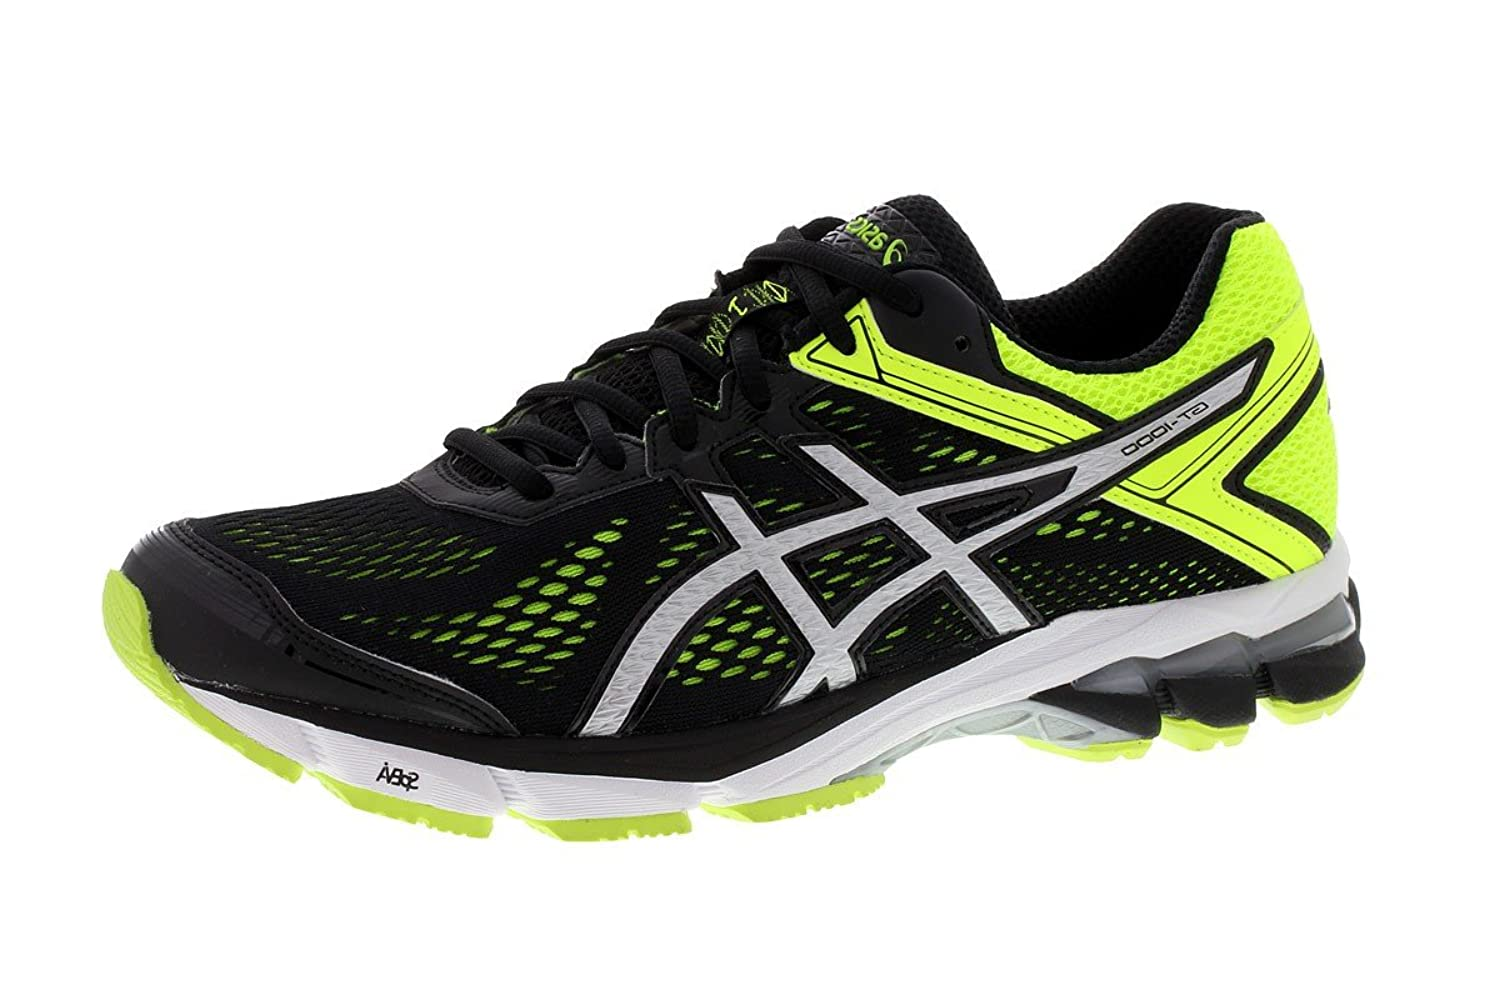 Asics Zapatos De La Oficina Central De La India pNN66XLS